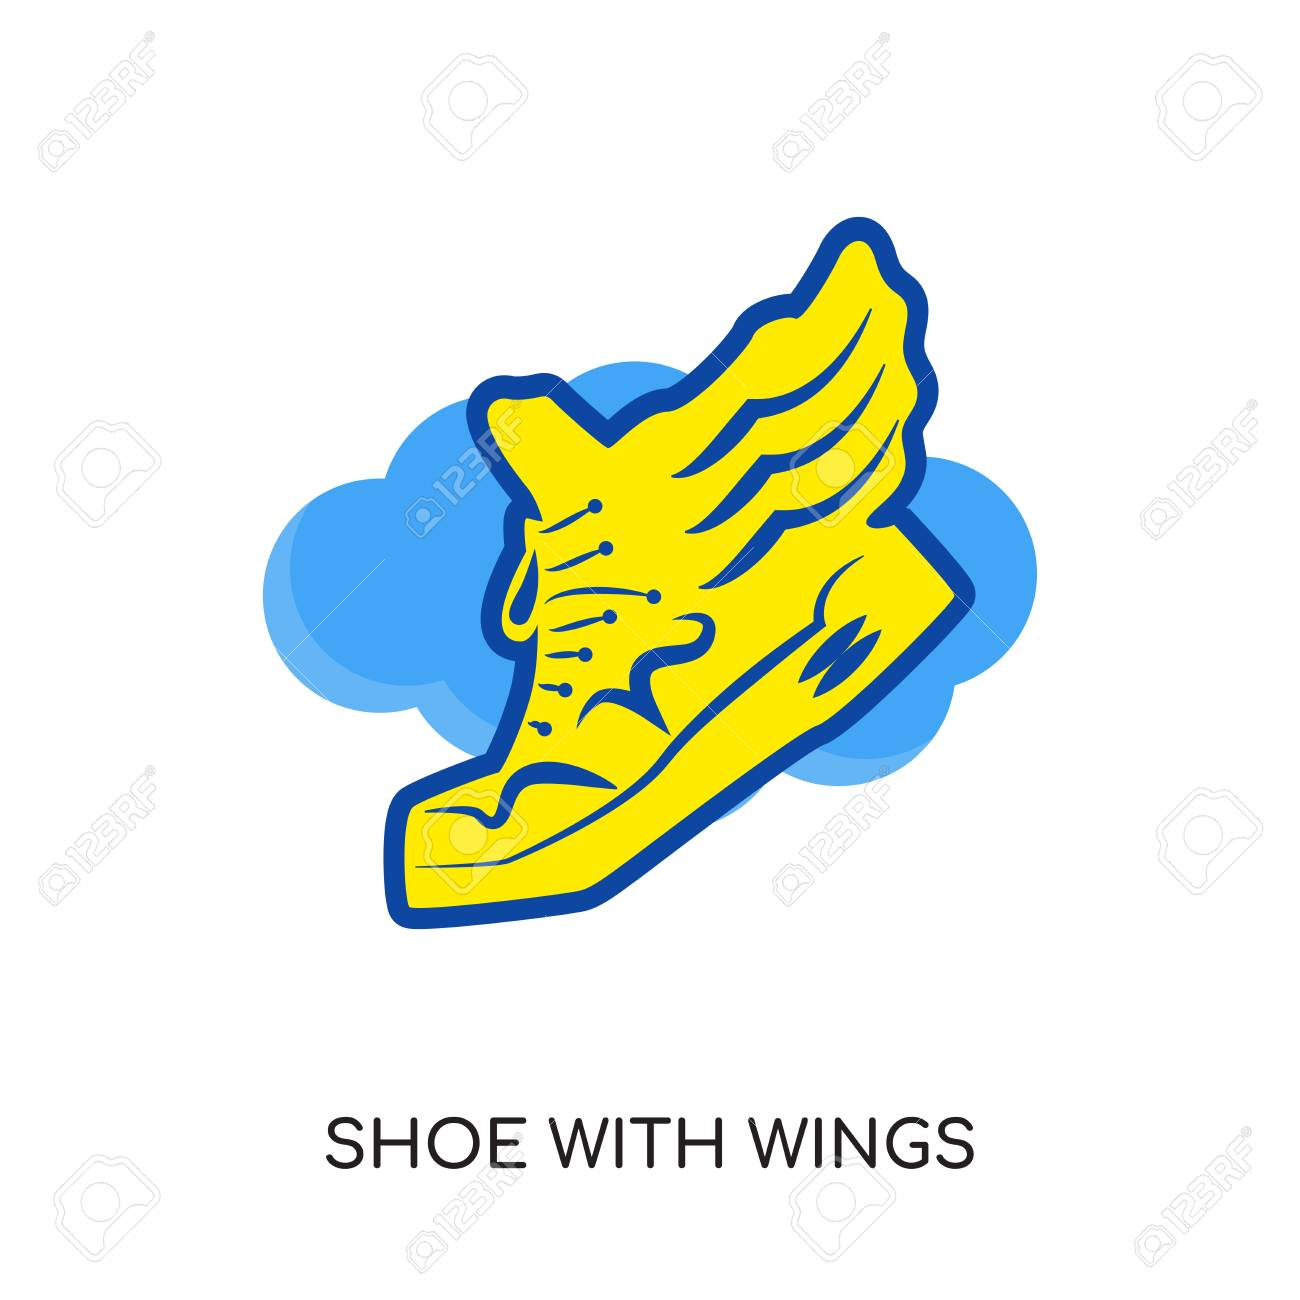 shoe with wings logo isolated on white background for your web rh 123rf com flying shoe with wings logo name